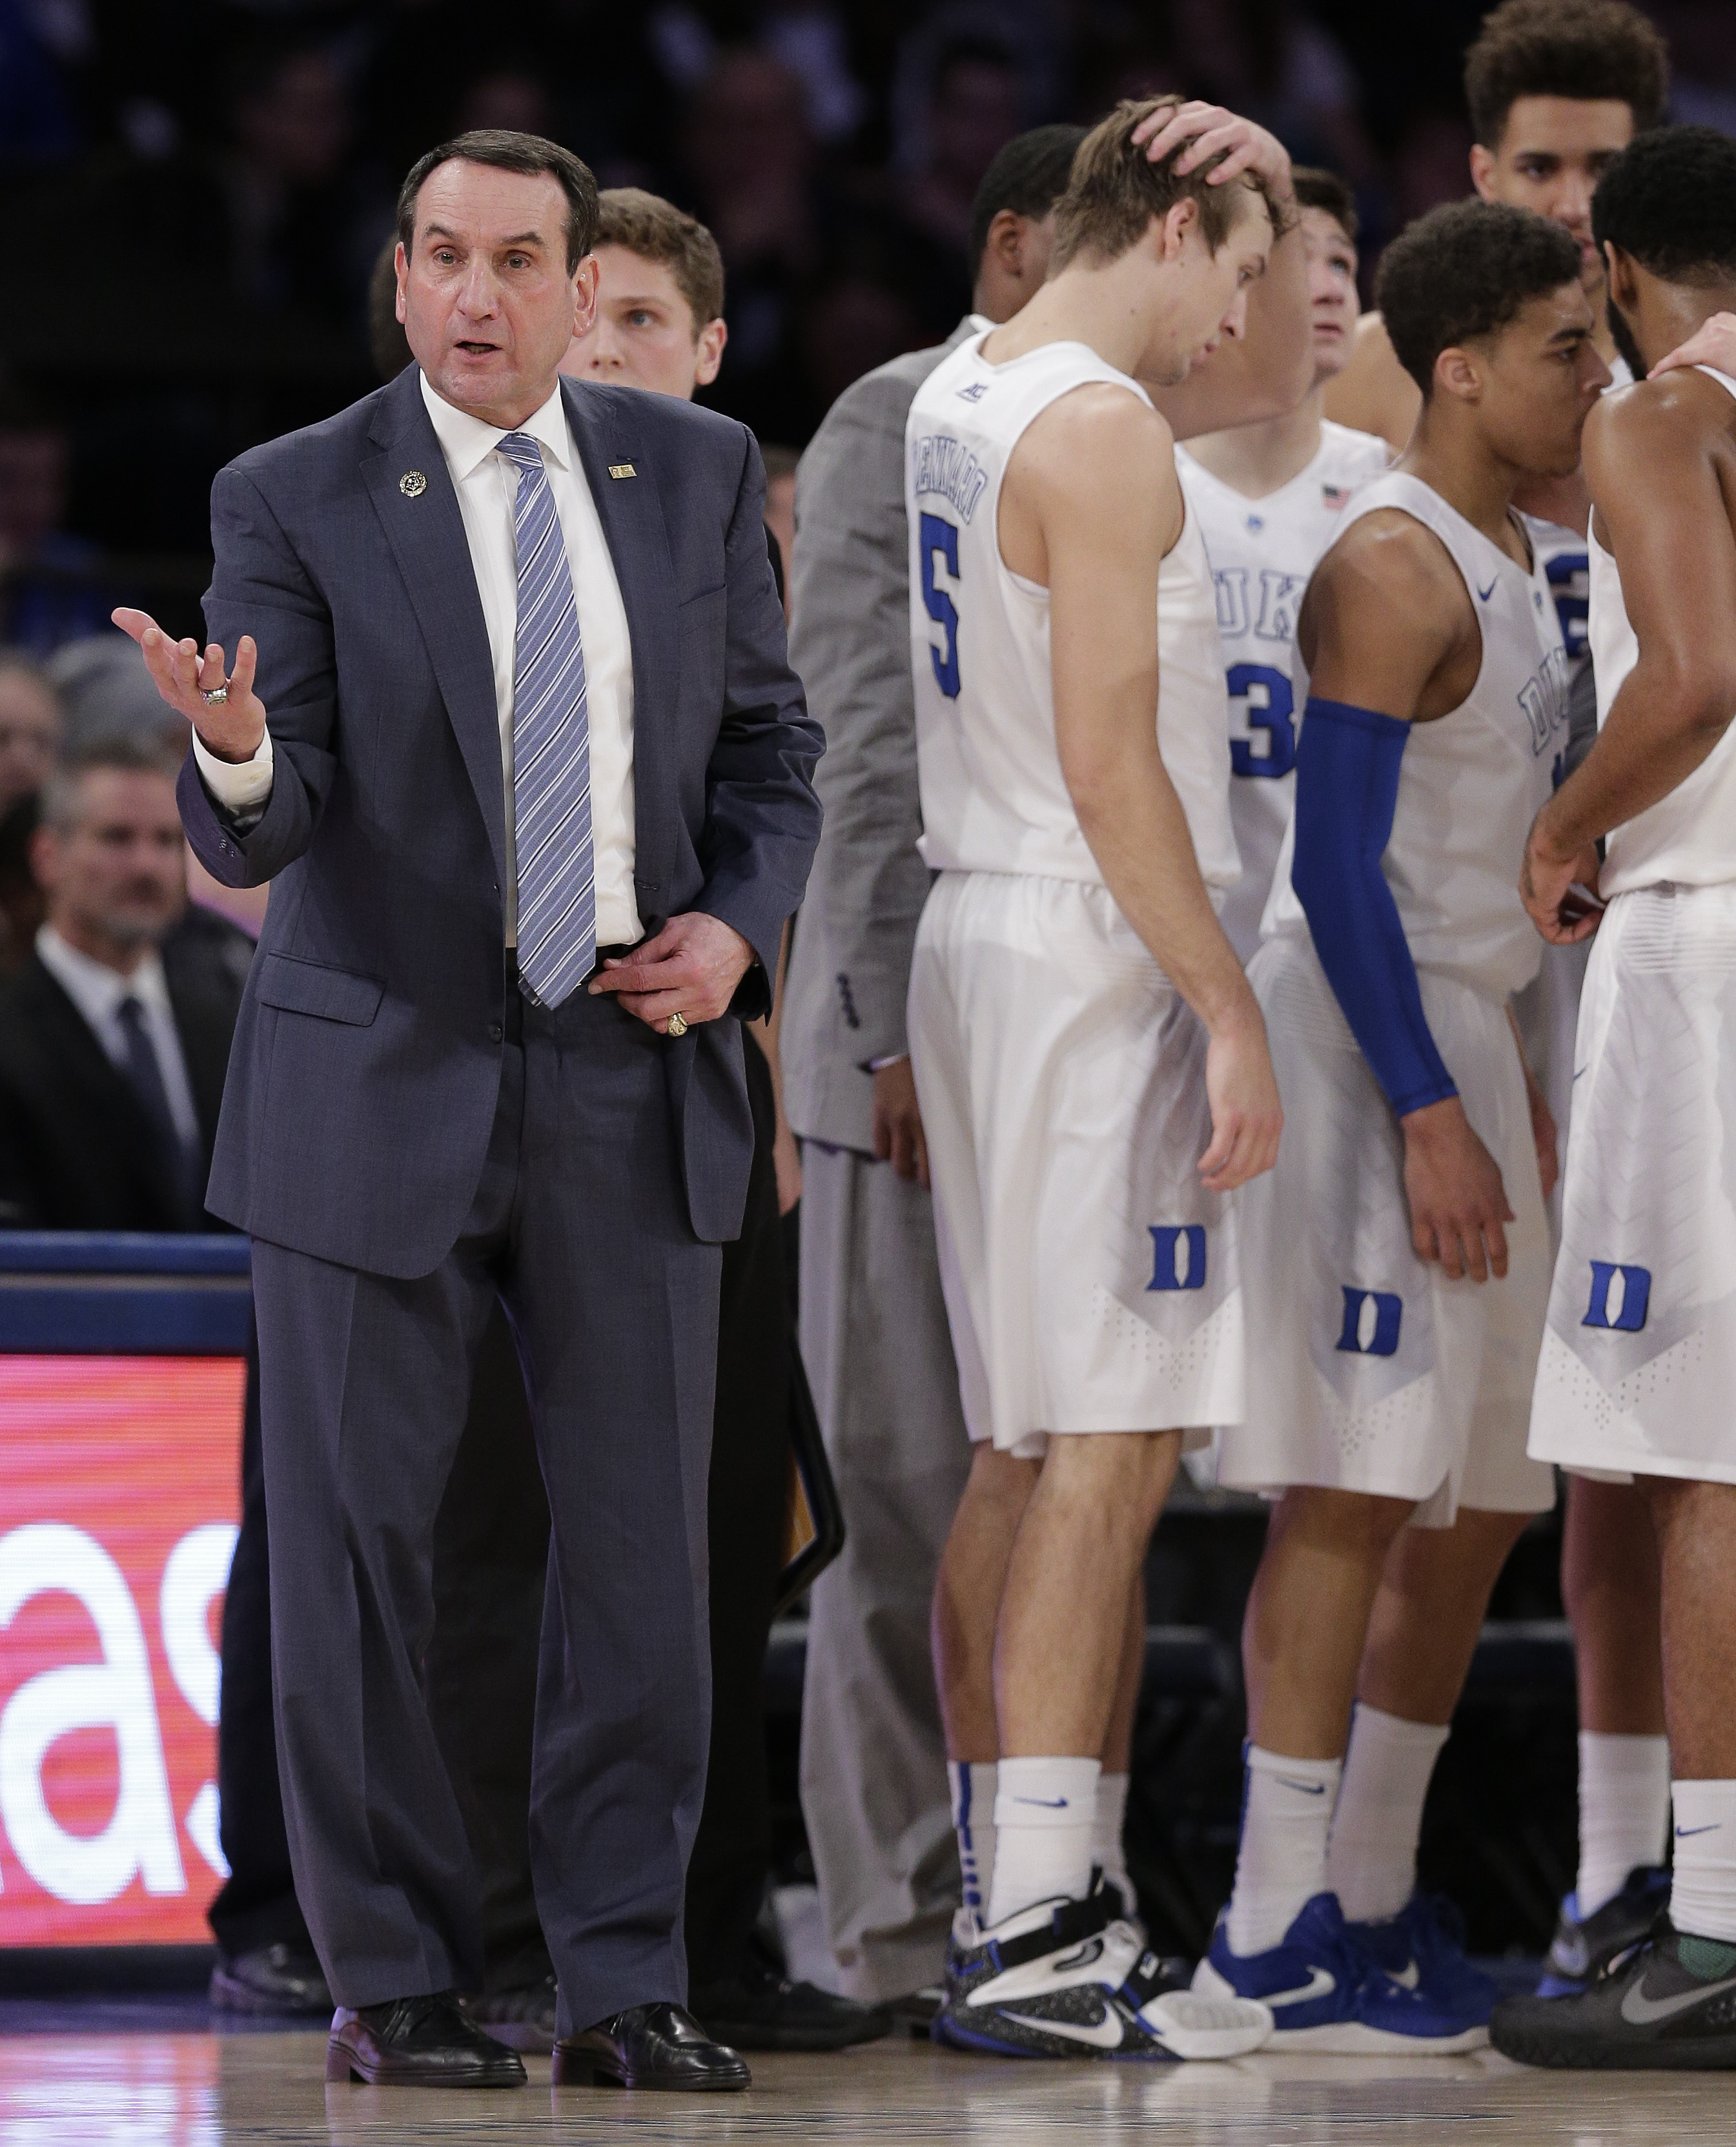 Duke head coach Mike Krzyzewski looks to the referee for a goal tending call as the team gathers during a timeout in the first half of an NCAA college basketball game against Utah, Saturday, Dec. 19, 2015, in New York. (AP Photo/Julie Jacobson)